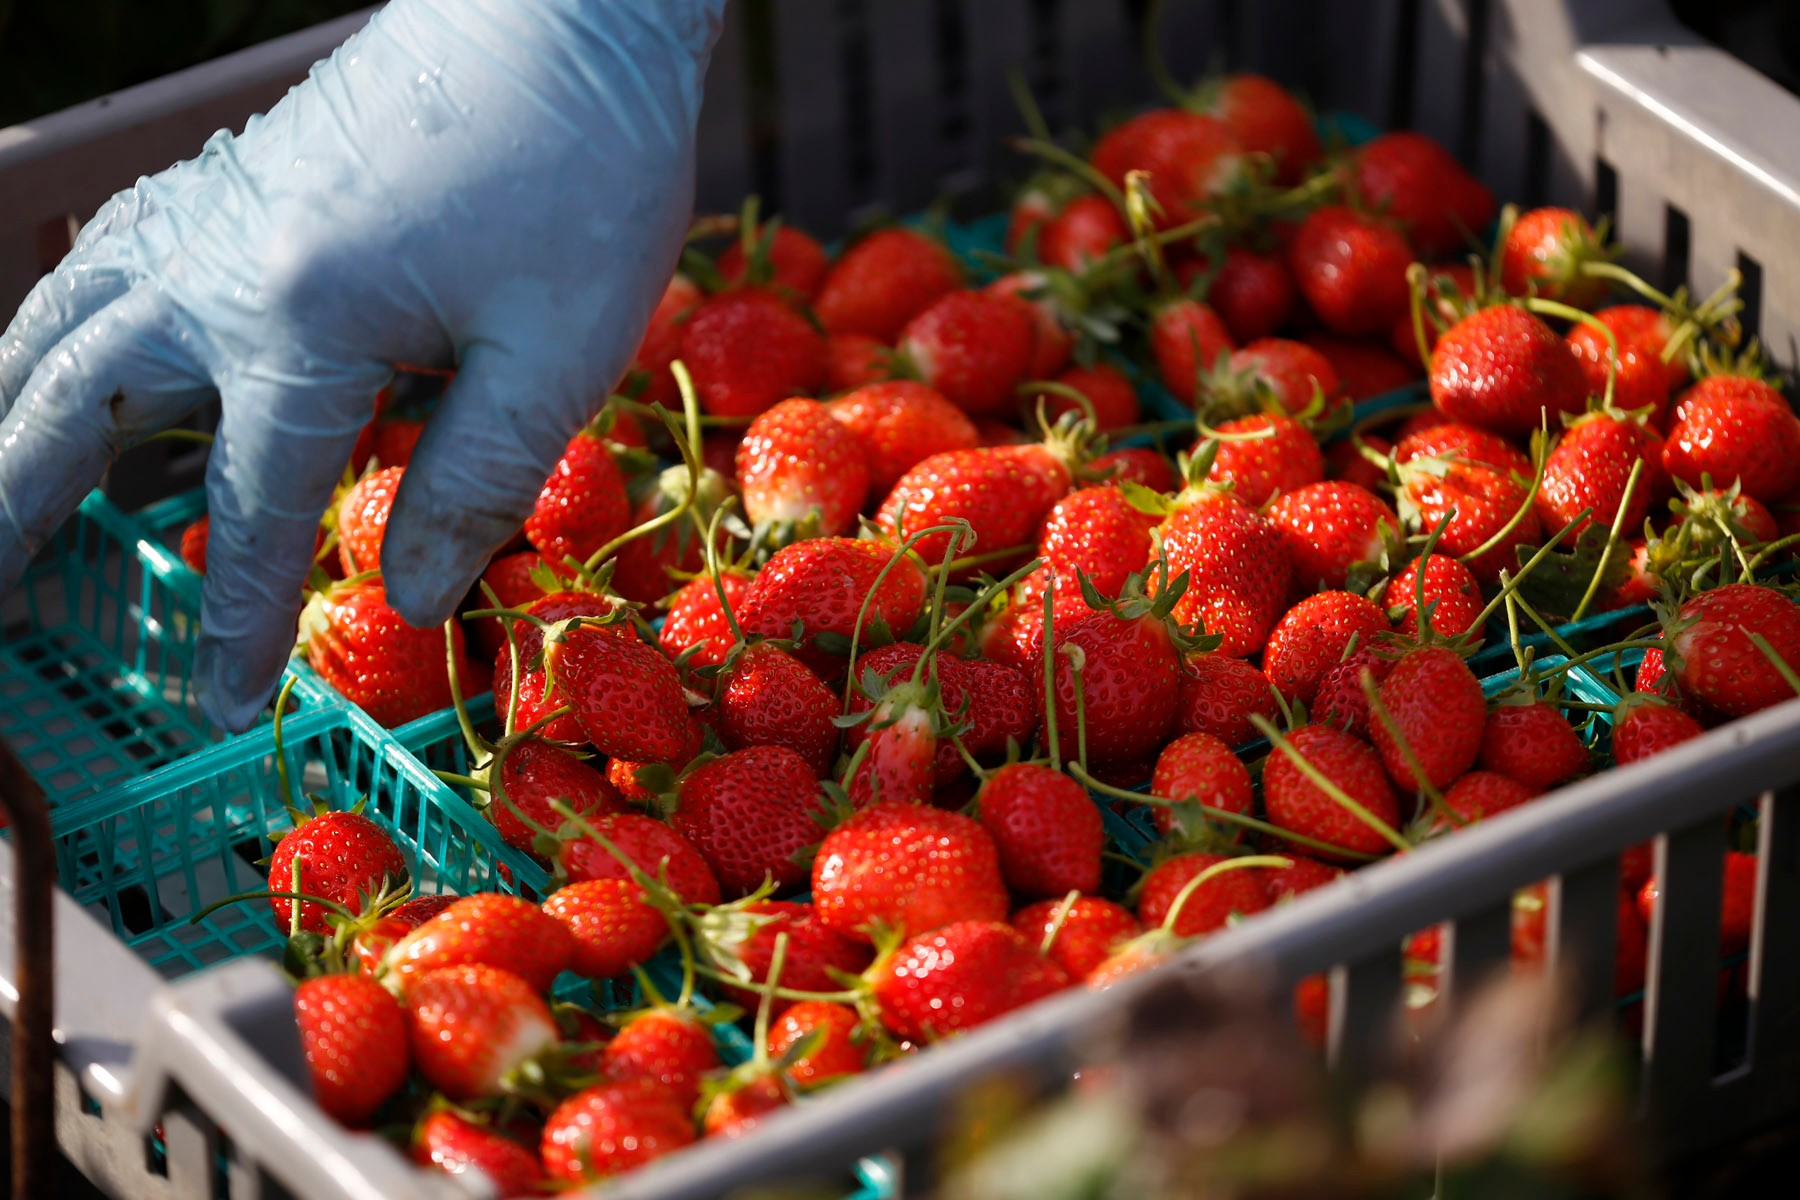 San Diego California, USA, December 13th 2016: | Chino Farms located in Rancho Santa. The farm is recognize and publicize for the high quality produce. A worker packing strawberries (Mara des Bois). | (Alejandro Tamayo)